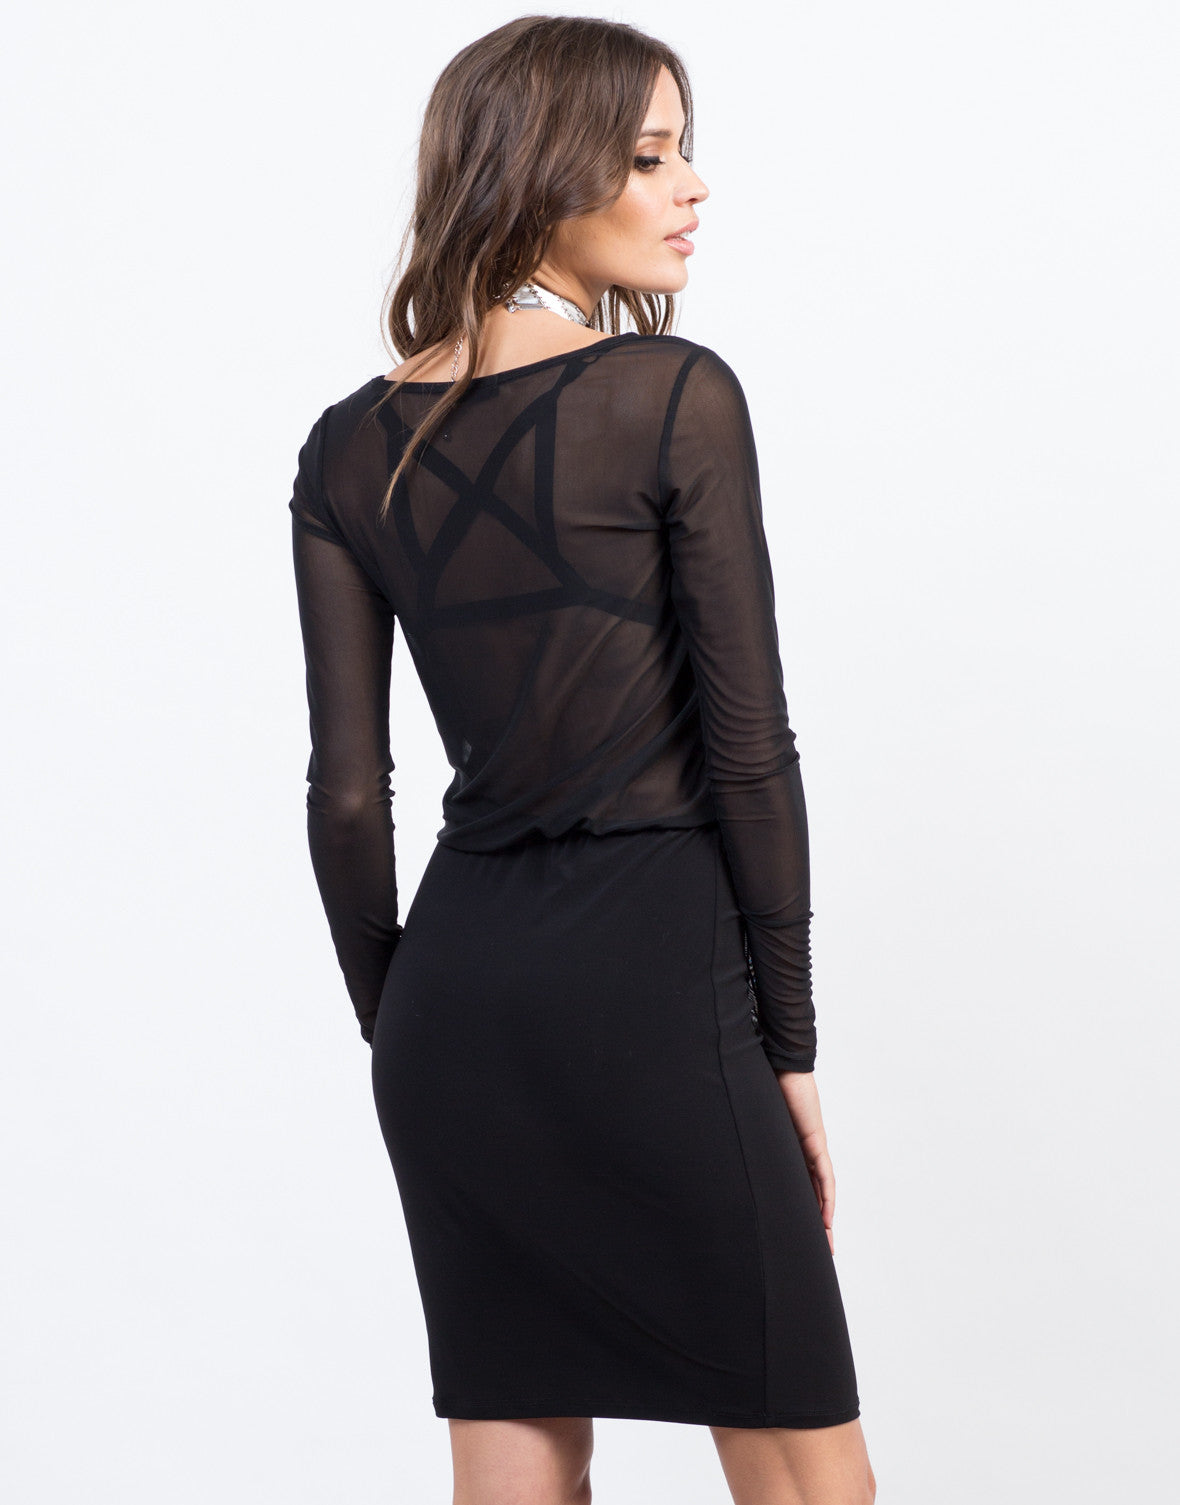 Back View of Contrast Mesh Dress